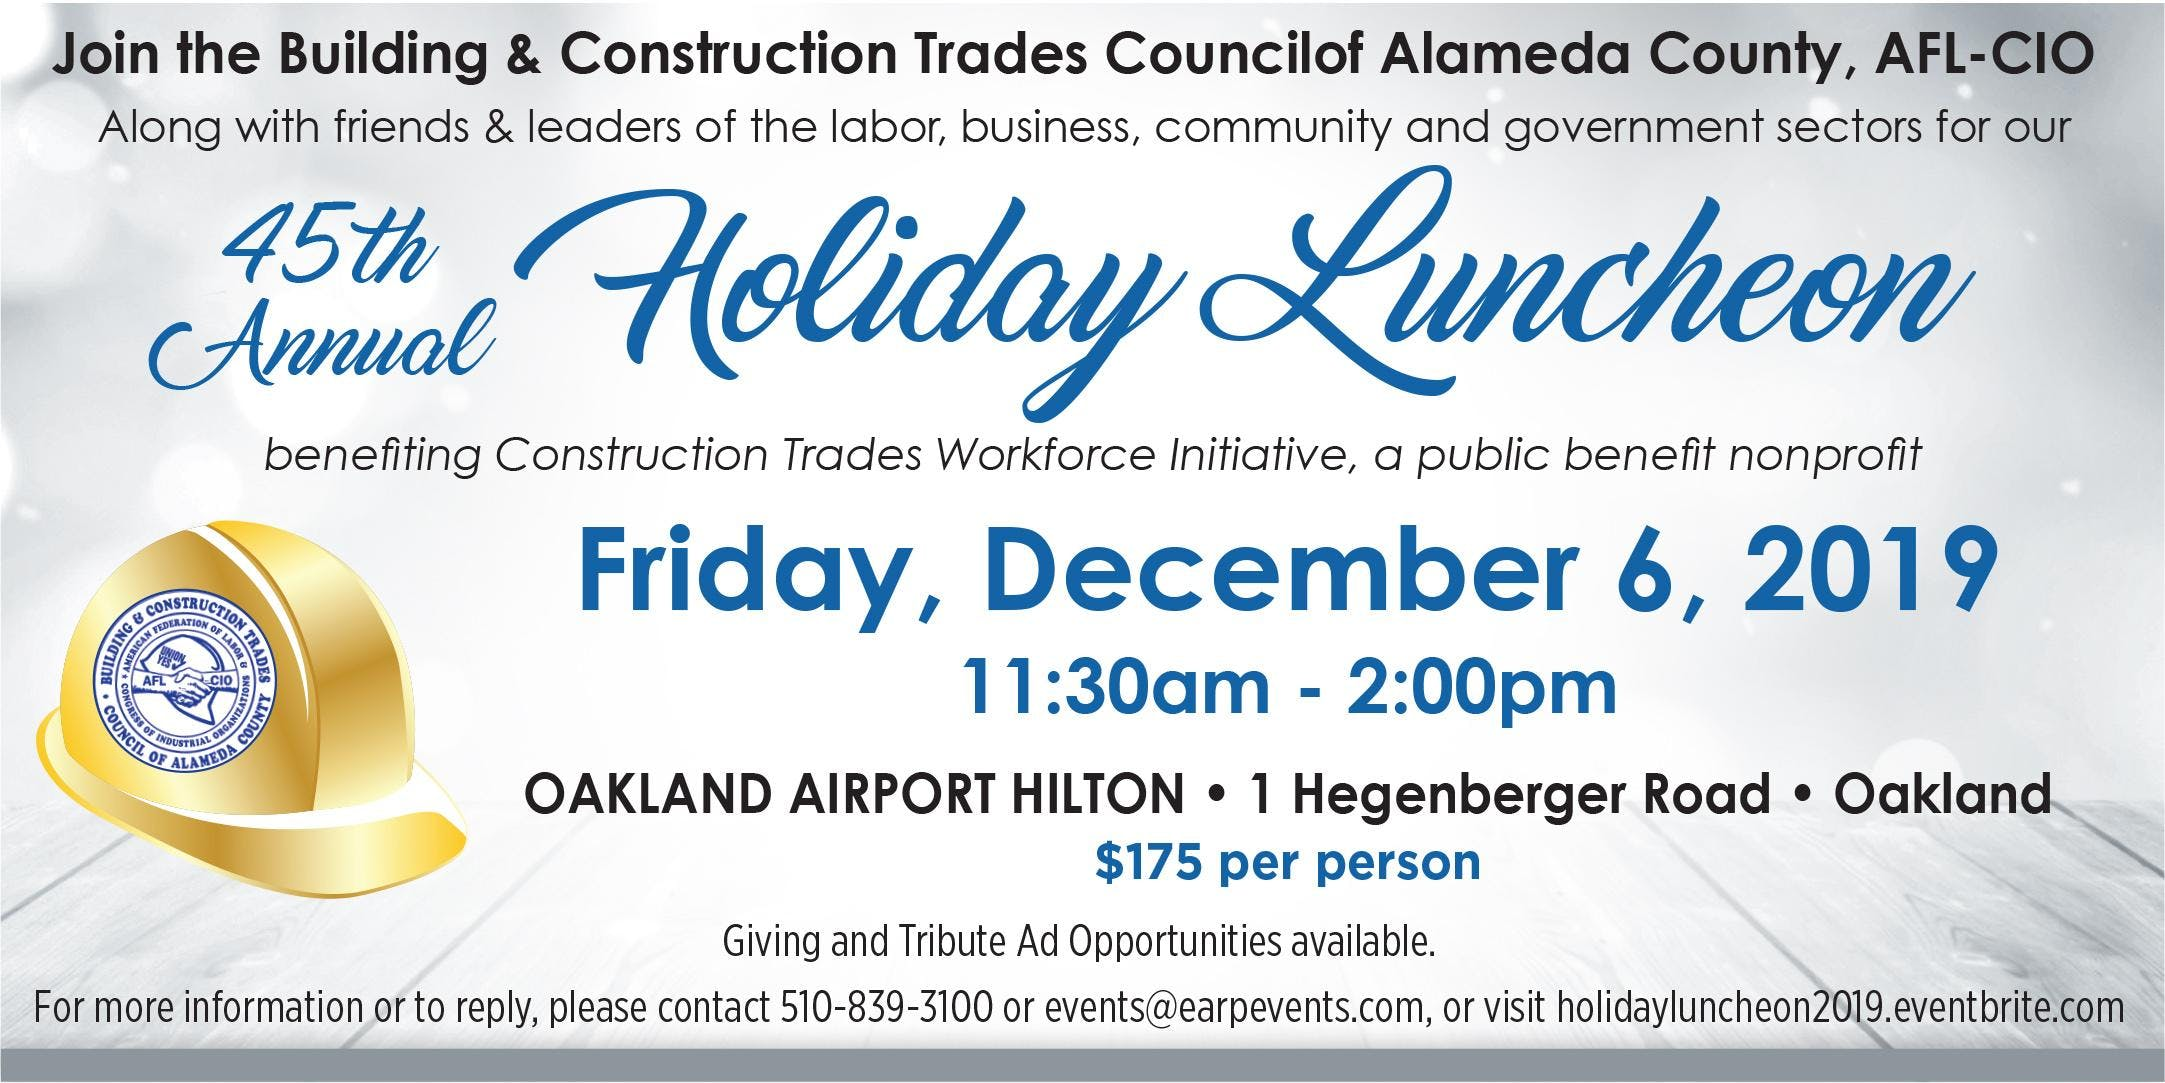 Building & Construction Trades Council of Alameda Countys 45th Annual Holiday Luncheon - benefiting Construction Trades Workforce Initiative  a public benefit nonprofit